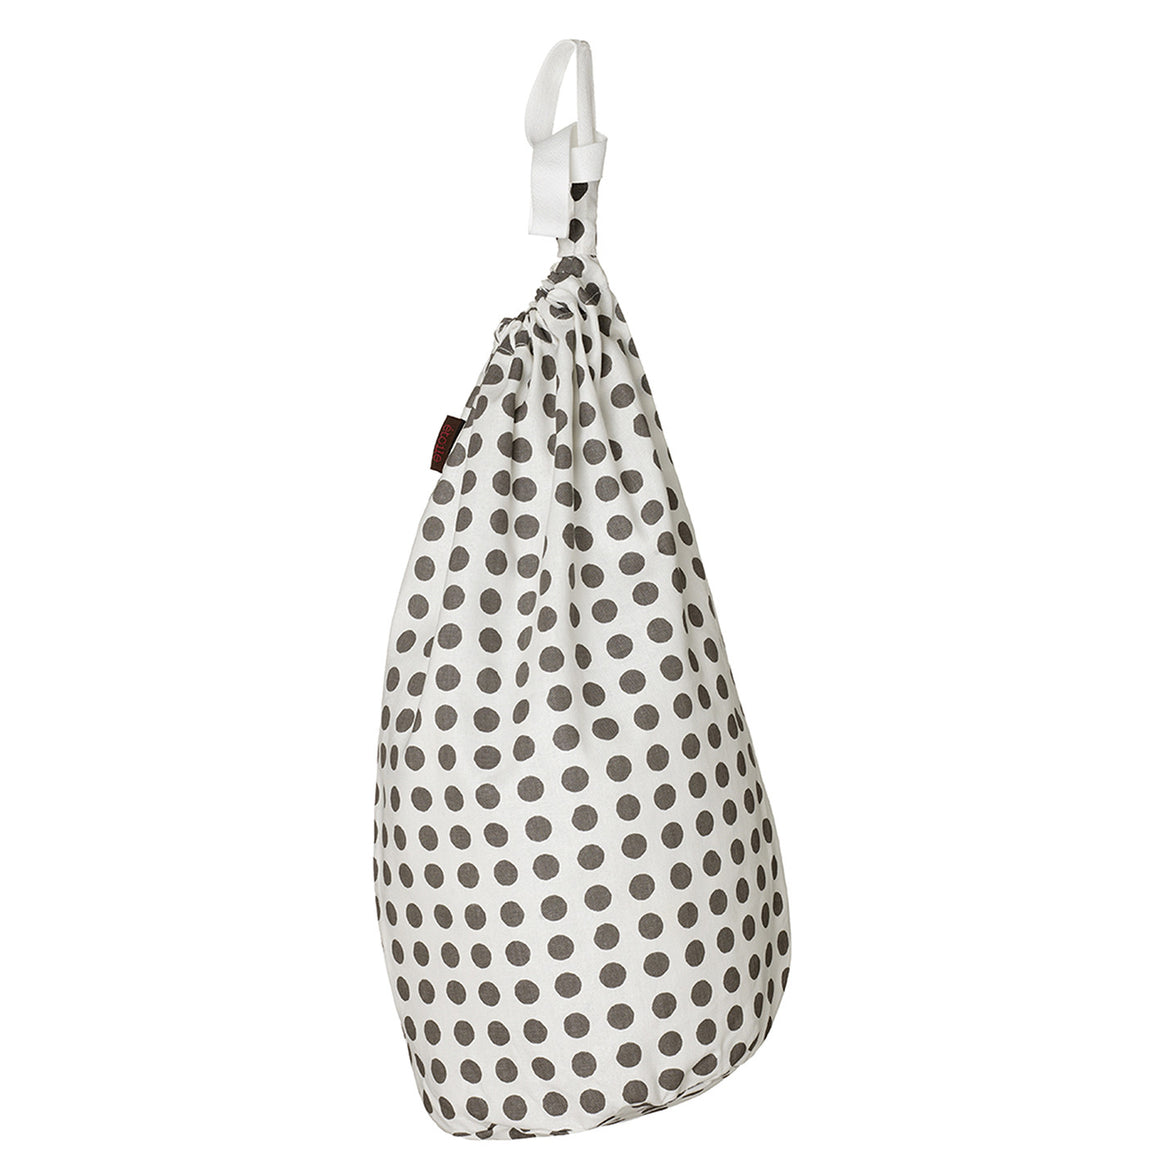 London Polka Dot Pattern Linen Cotton Laundry Bag in Stone Grey